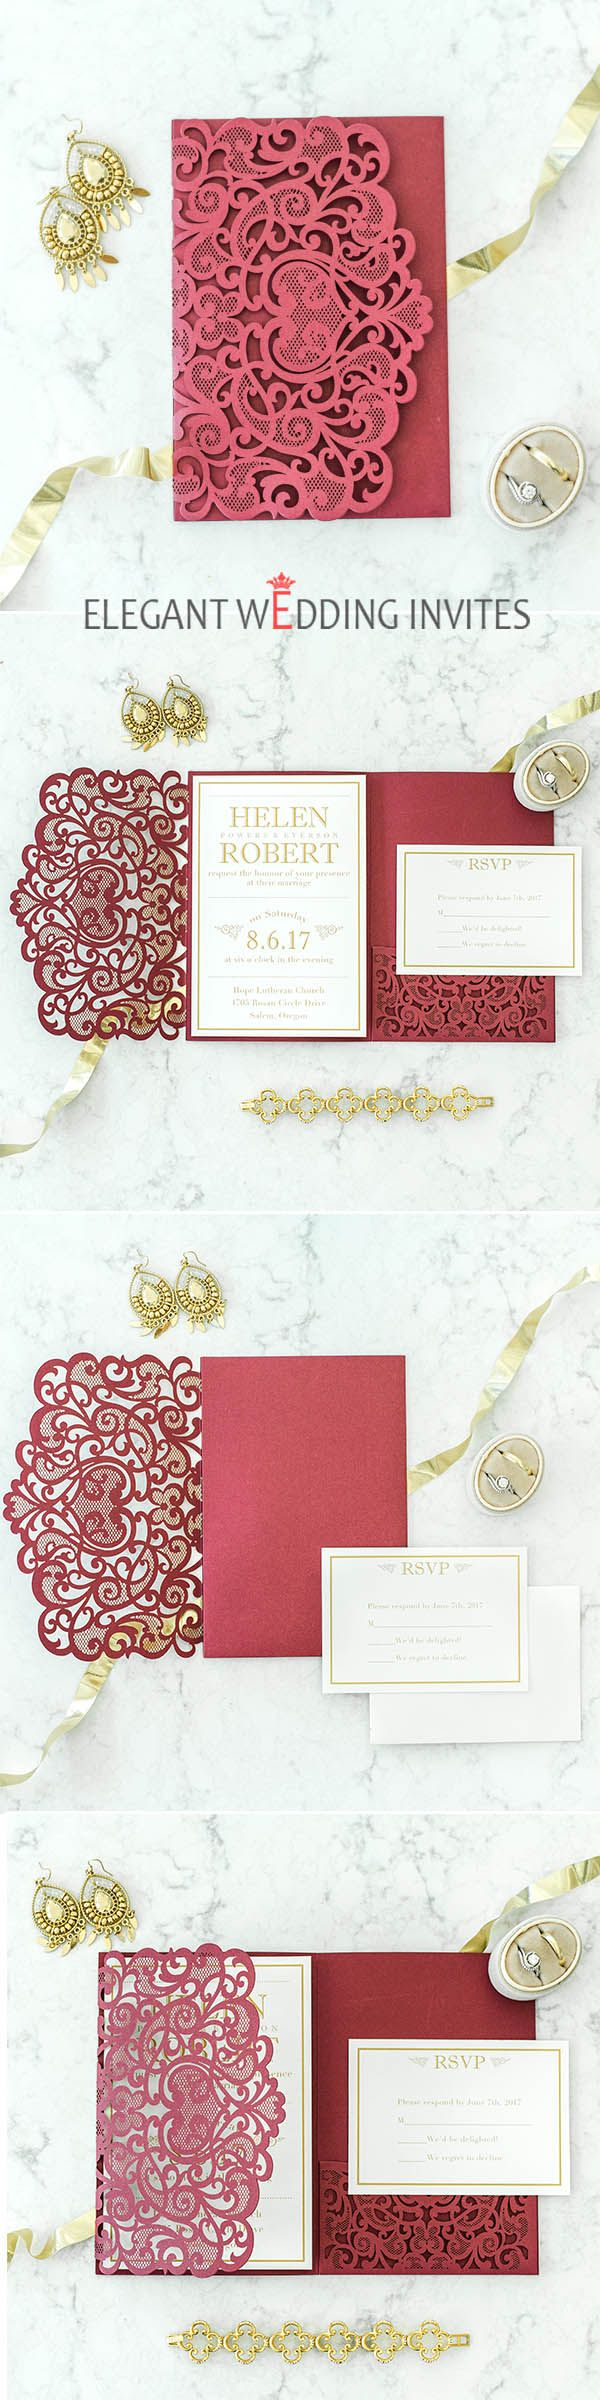 $370 for 100 sets of invitations -- Elegant Fall Burgundy and Gold Heart Laser Cut Pocket Wedding Invitations EWWS181